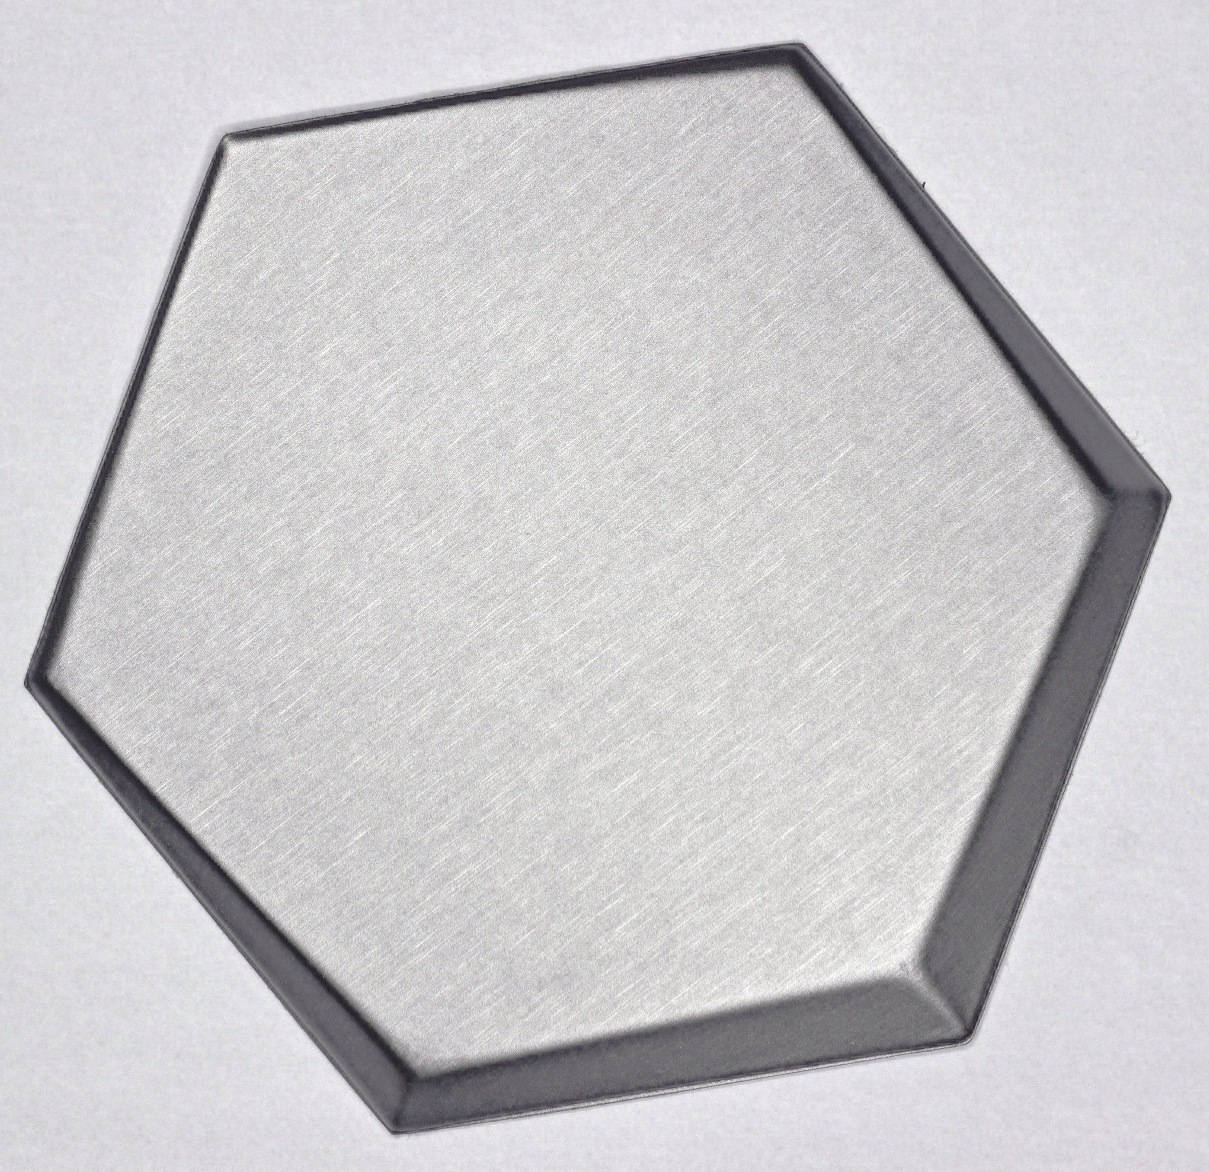 6TH ELEMENT HS-019 SILVER GREY Image